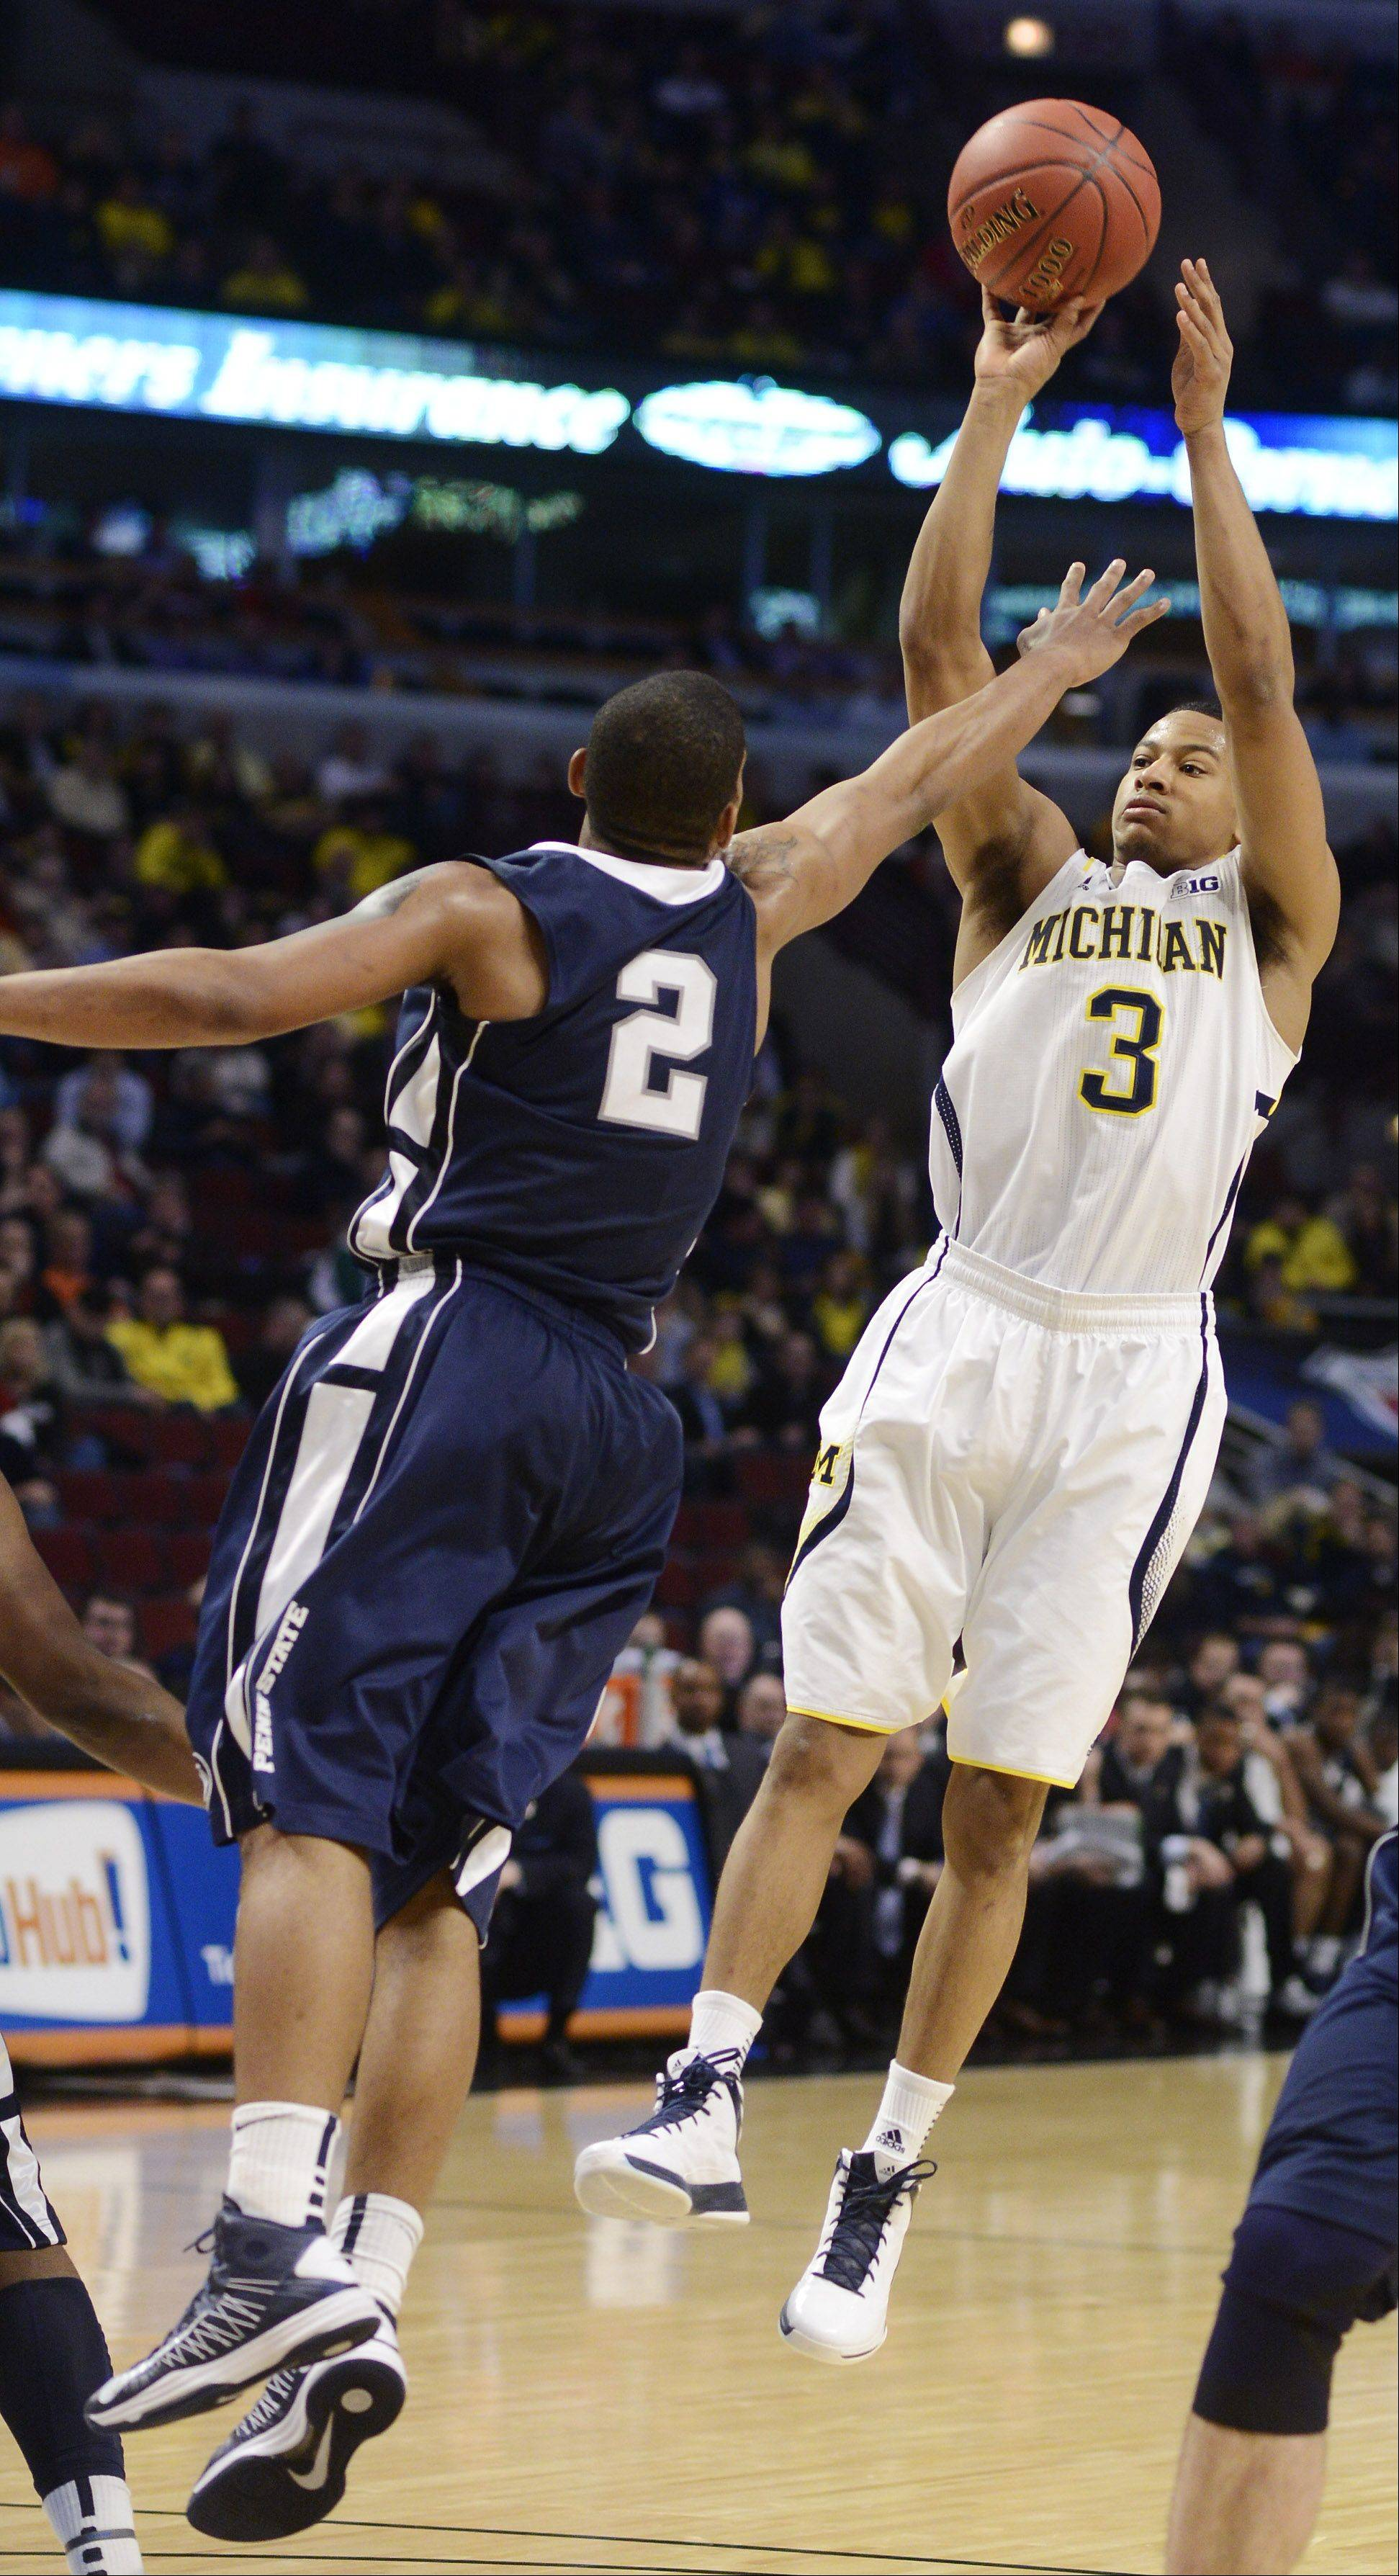 Michigan's Trey Burke takes a shot in front of Penn State's D.J. Newbill.